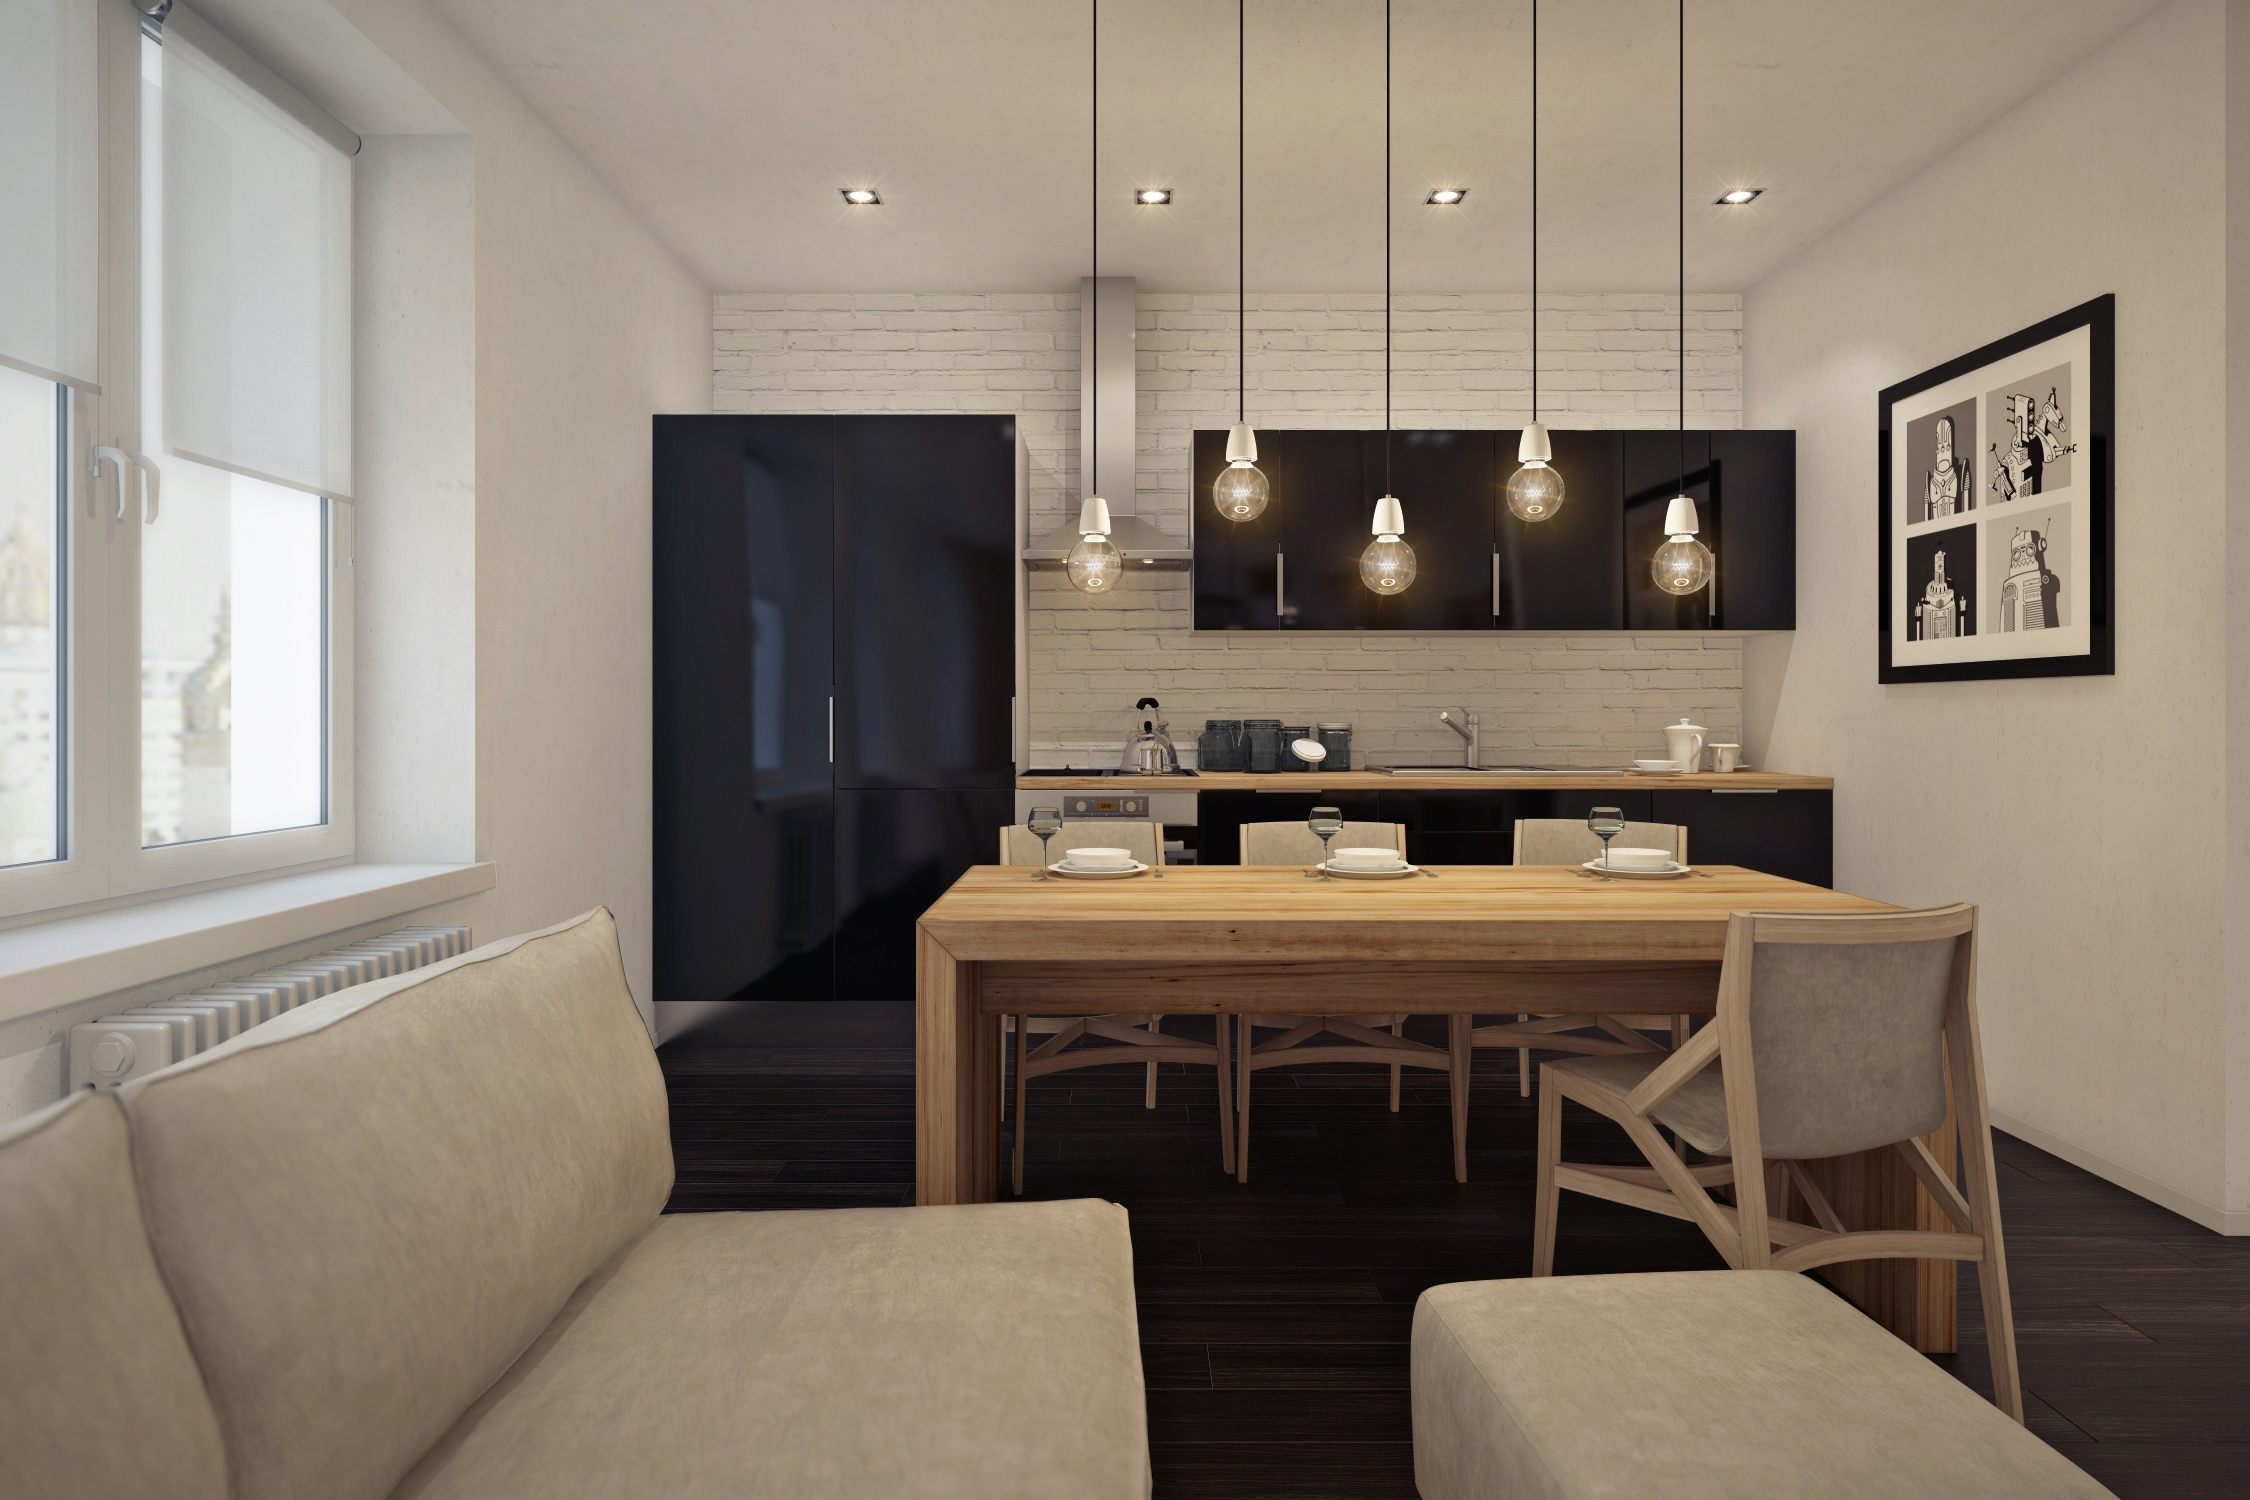 Best Small Apartment Design Ideas – Small Apartment Design Ideas with Best Layout For West Garden Apartments Design Ideas